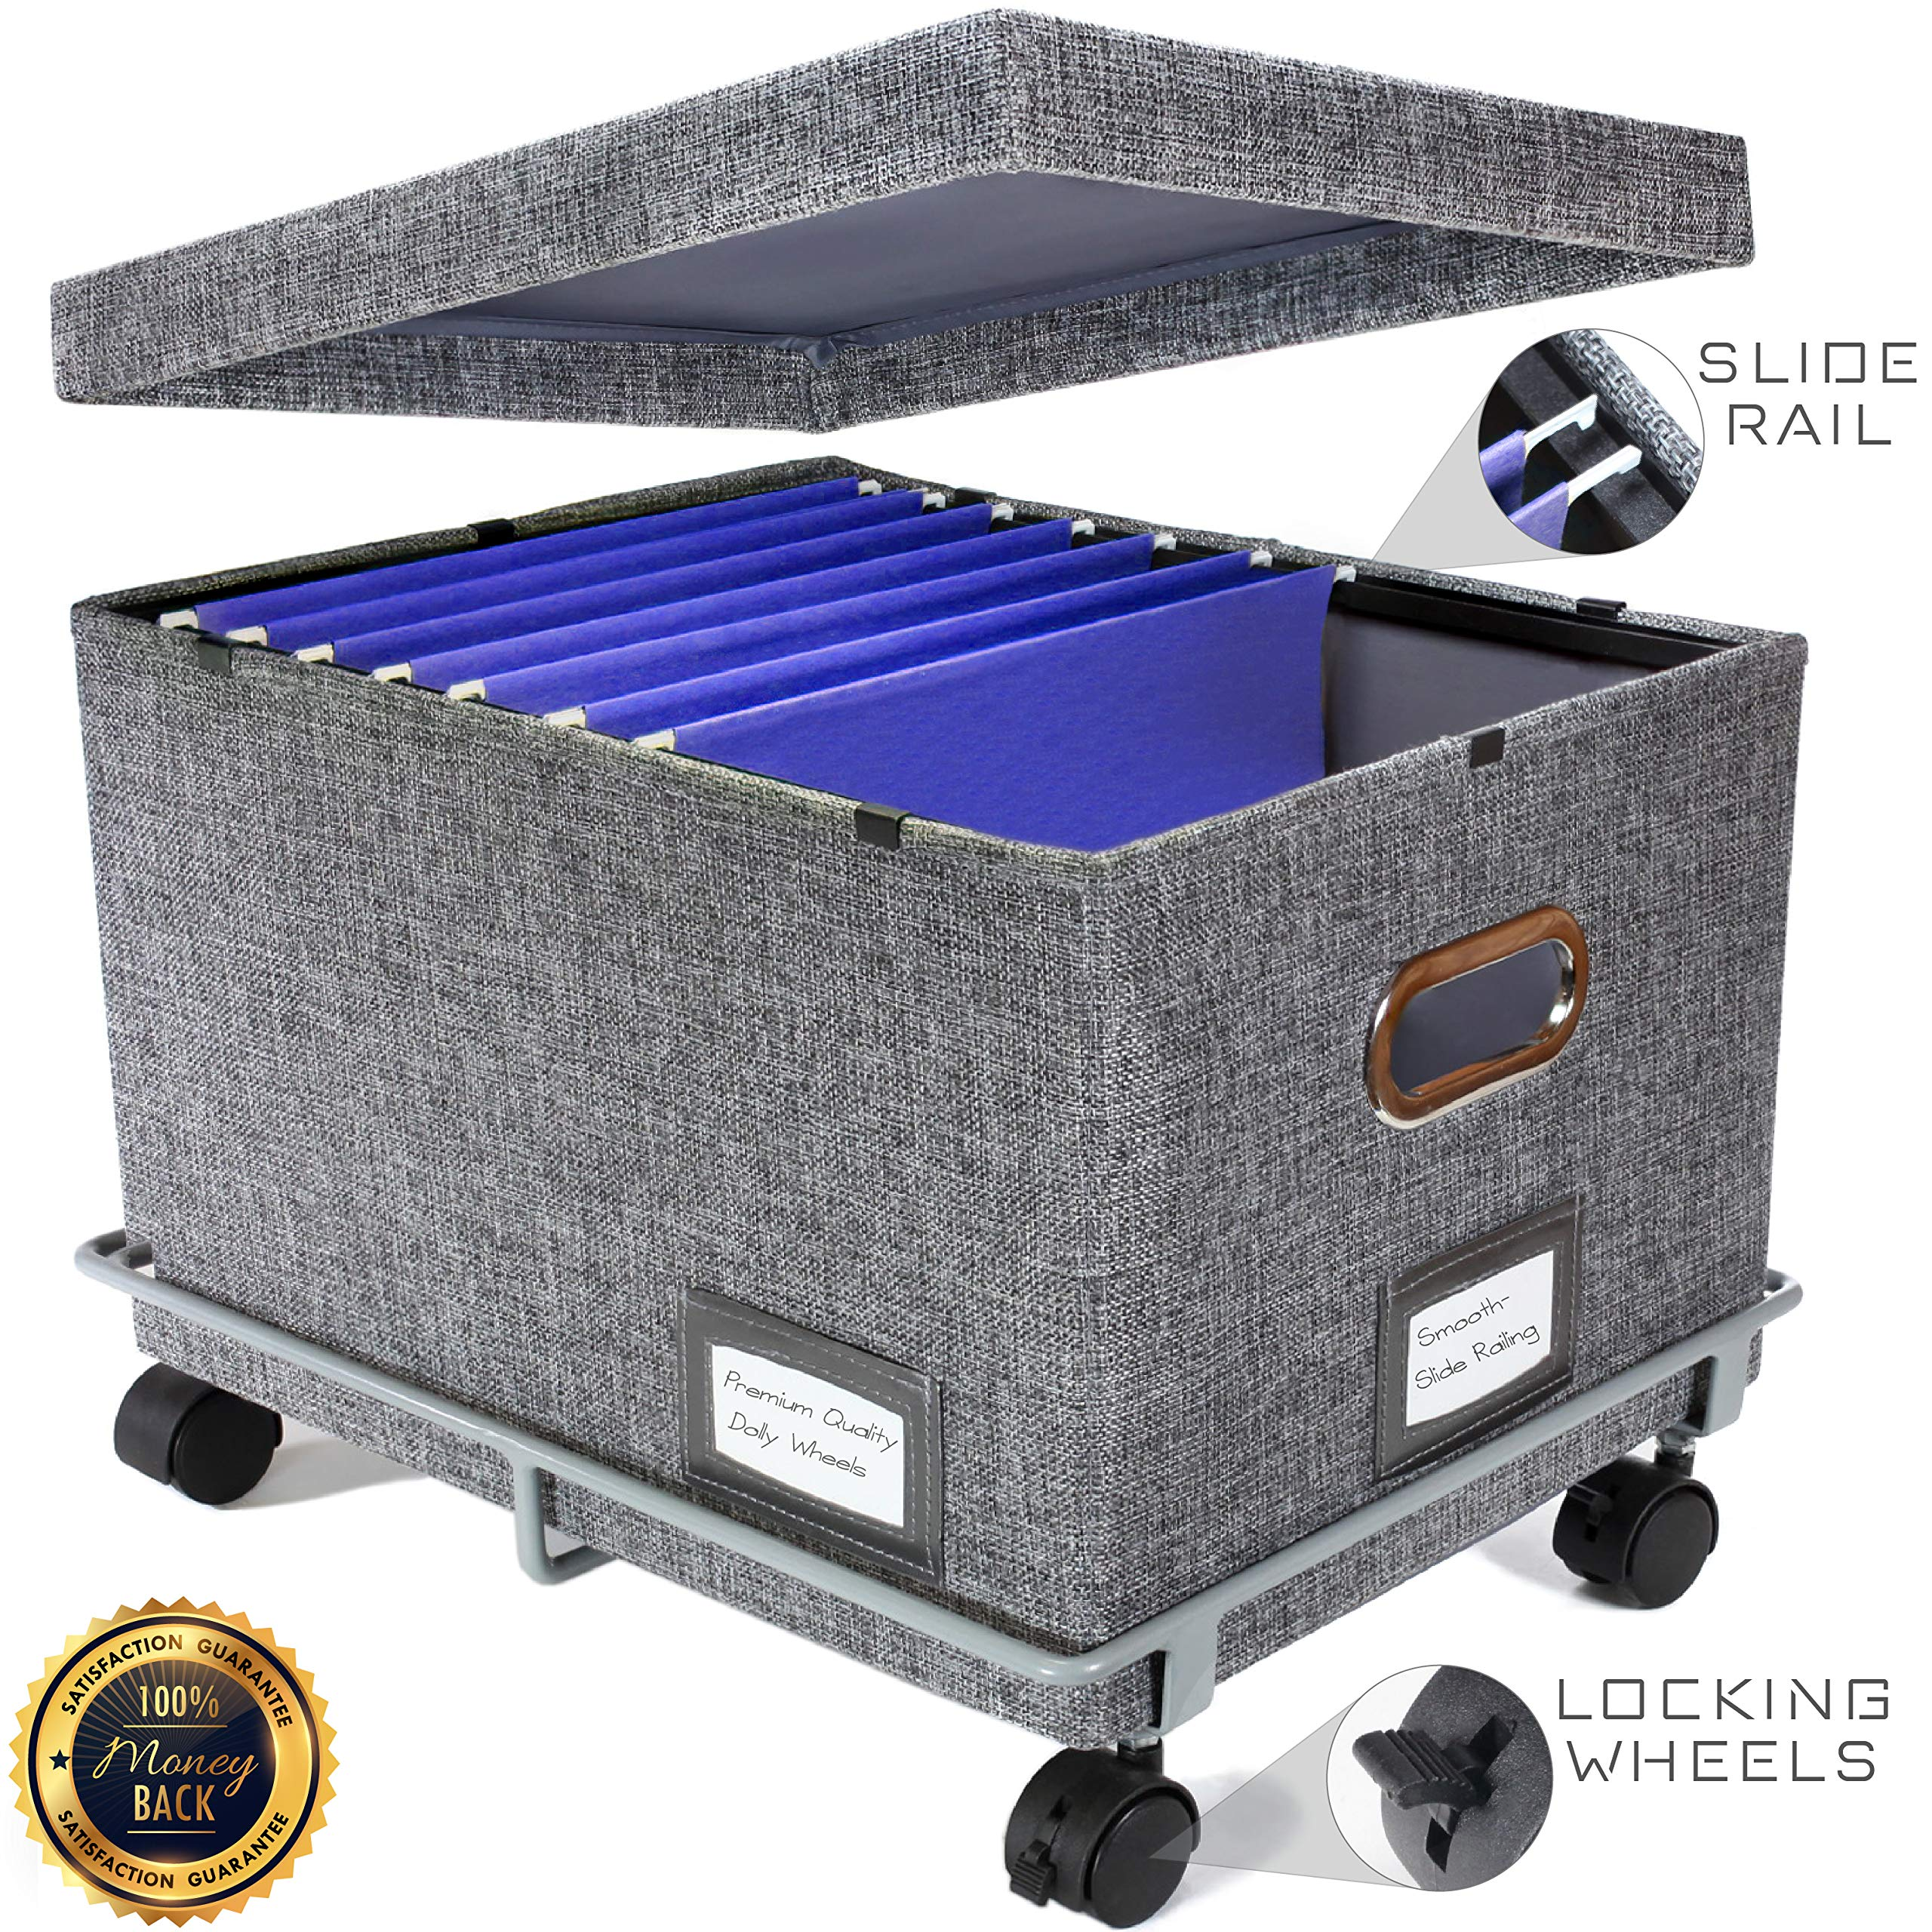 Premium Collapsible File Storage Organizer with Dolly Wheels | Office Hanging File Box | Smooth Sliding Rail | Fits Letter/Legal | Charcoal | 1 Pack by Premium Office Goods